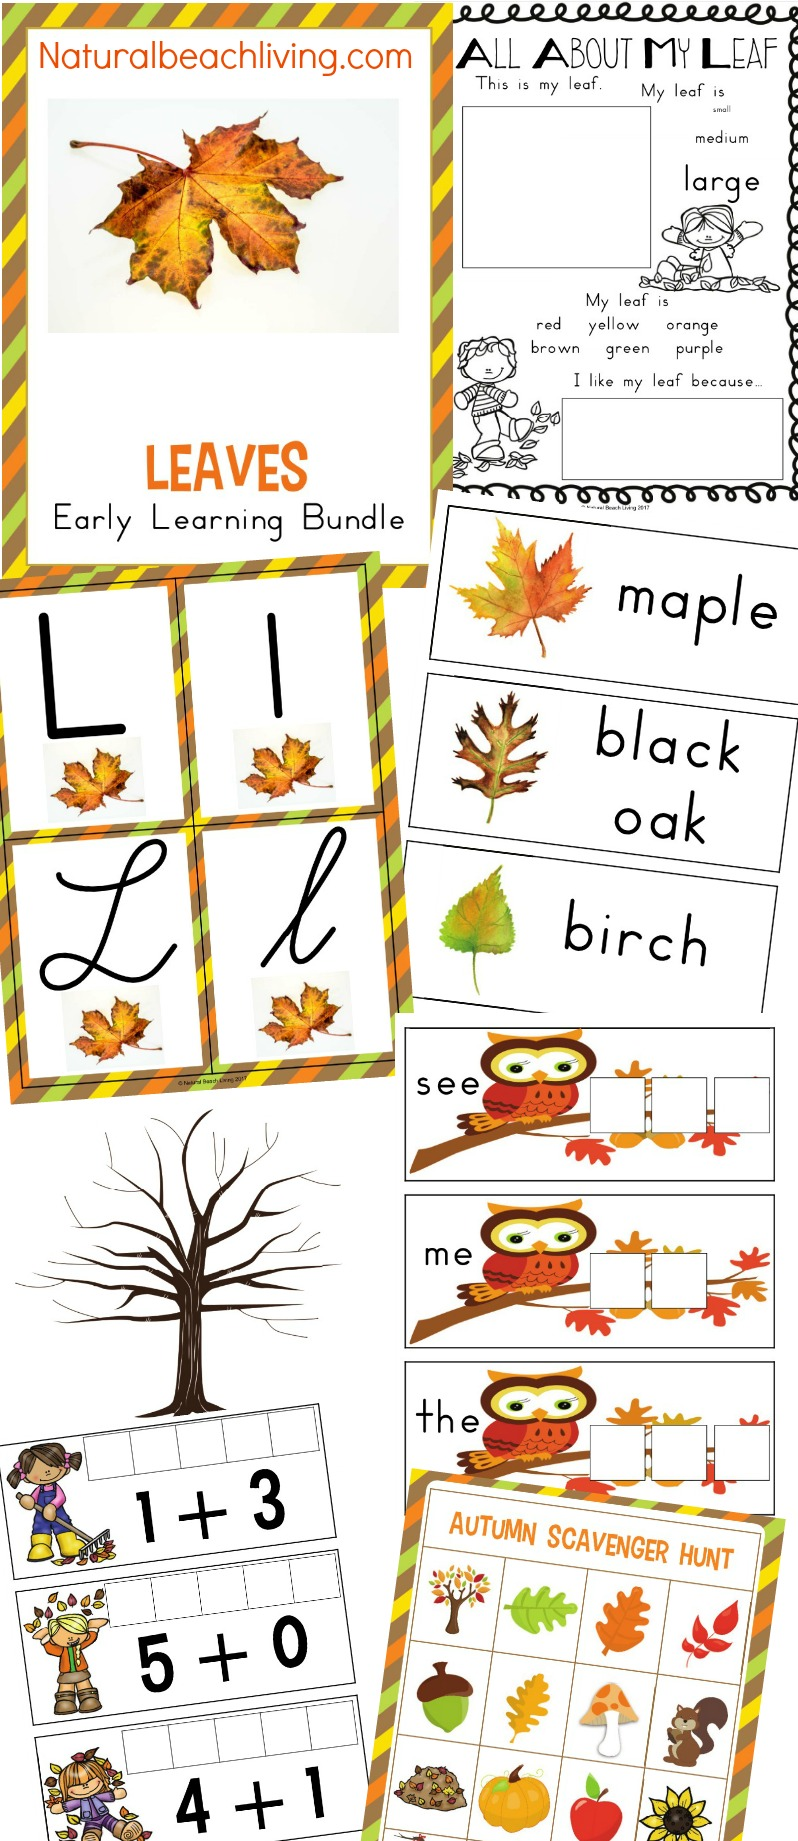 25+ Leaf Science Experiments and Activities for Kids, Plus Leaf Sensory play ideas and Leaf Science Projects, Perfect Preschool Leaf Theme Activities and easy leaf Experiments for Preschoolers and Kindergarten